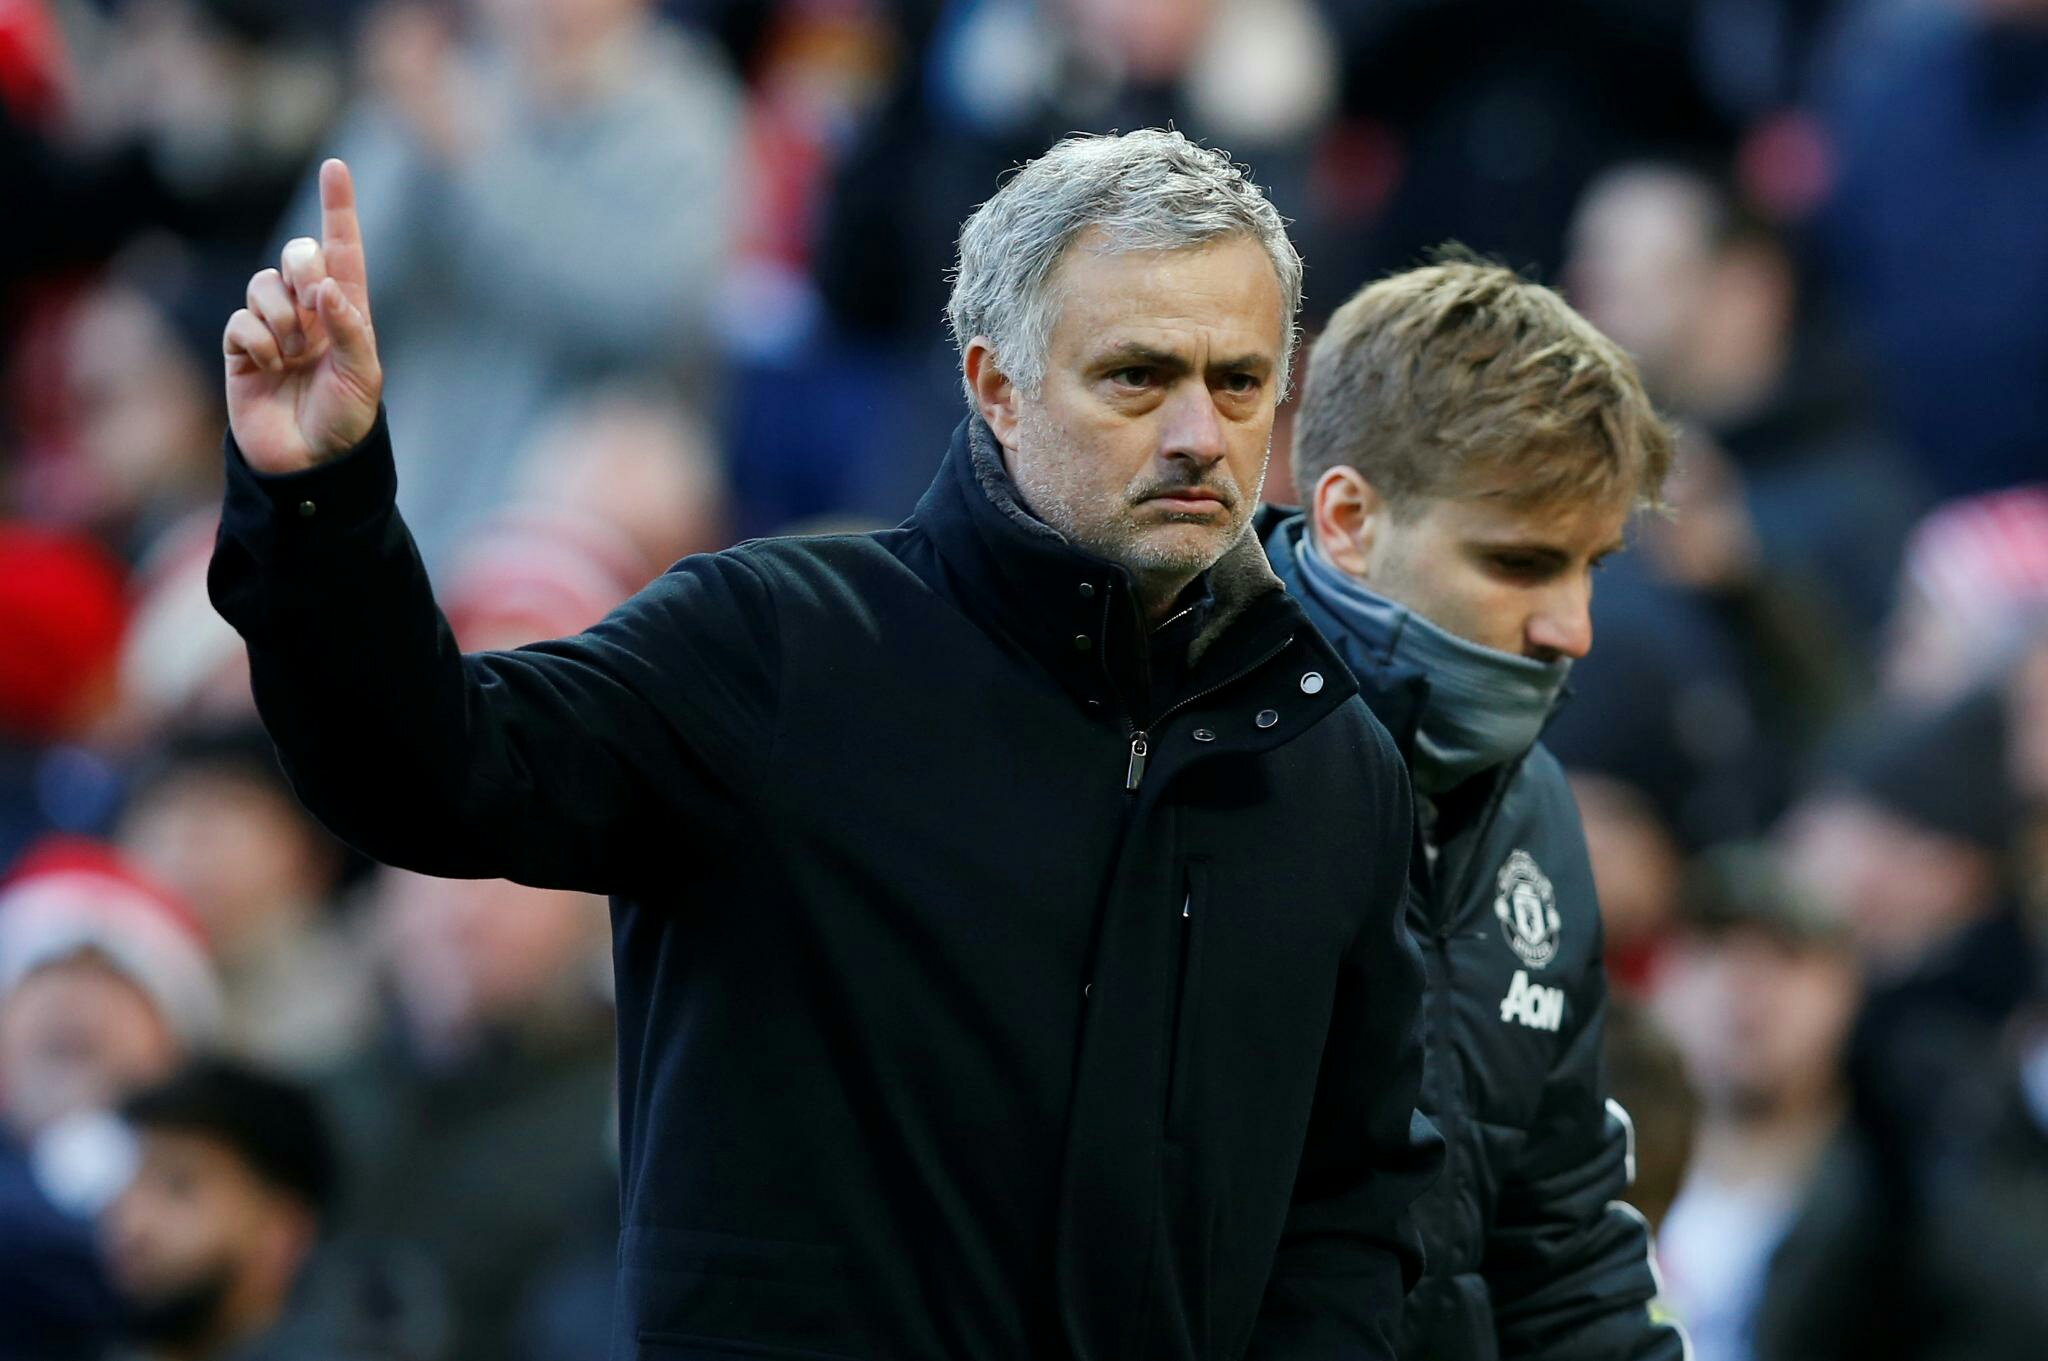 Mourinho aims sly dig at Chelsea